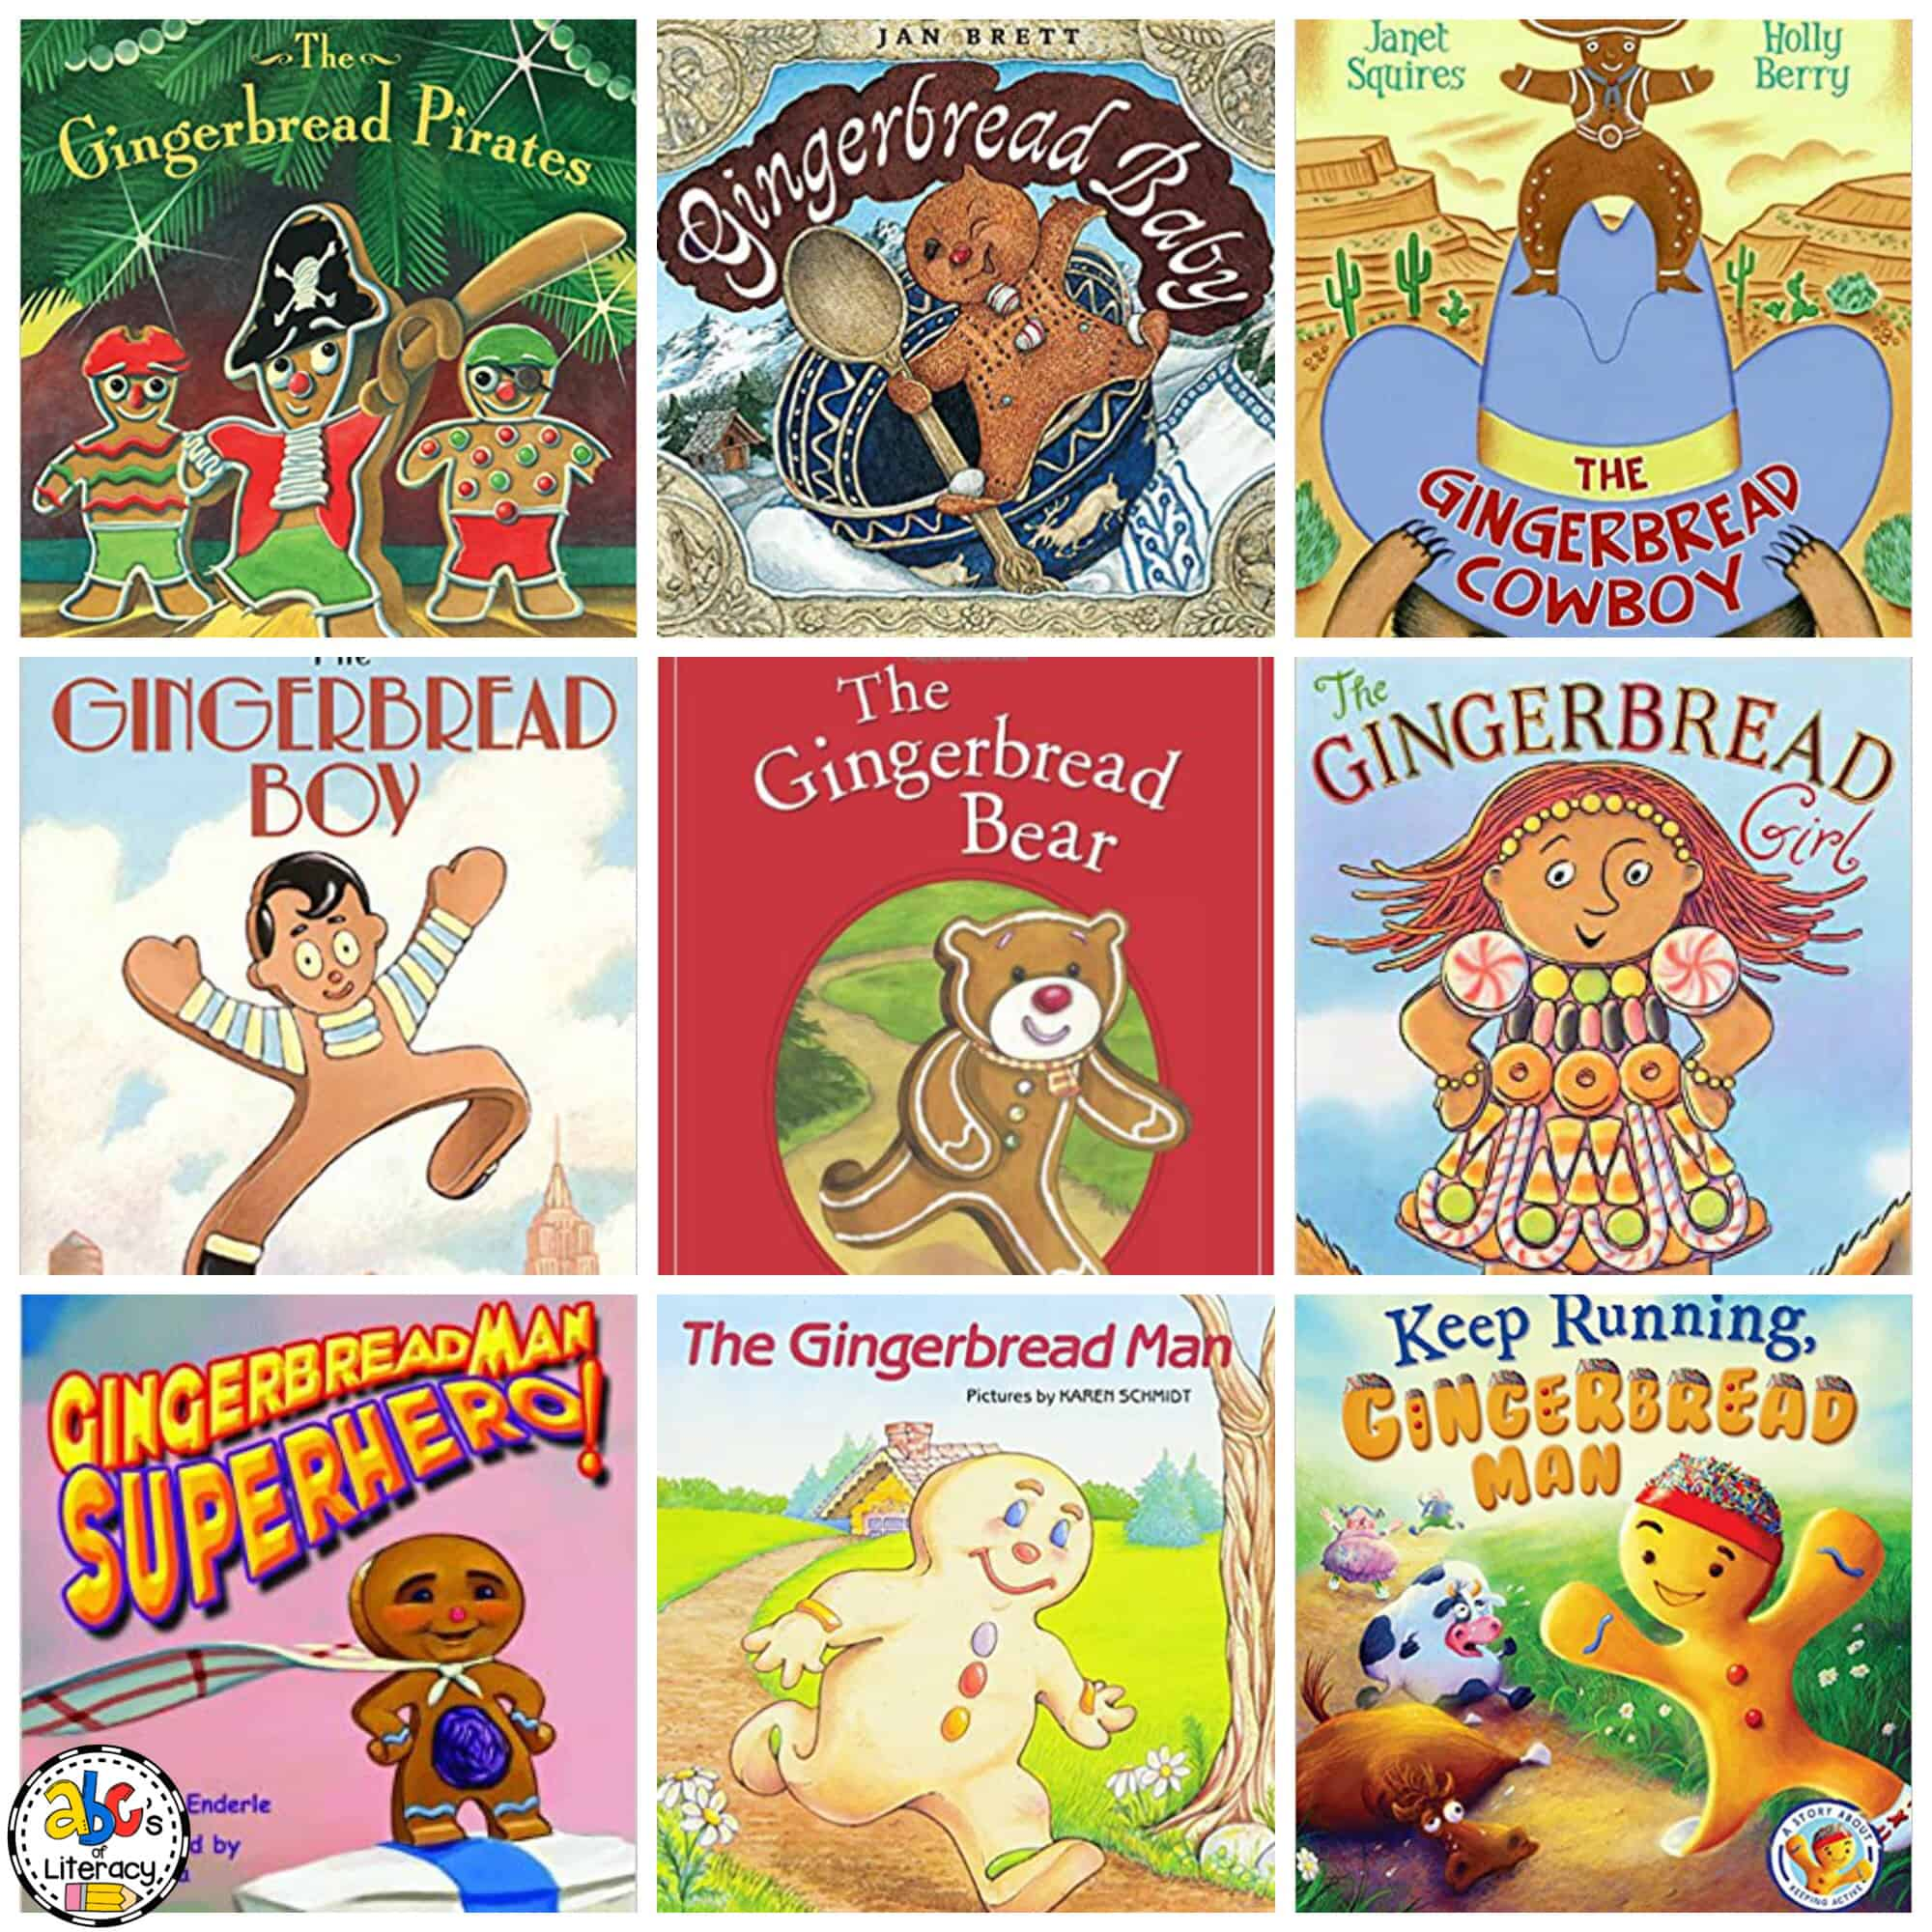 Gingerbread Man Book List for Kids